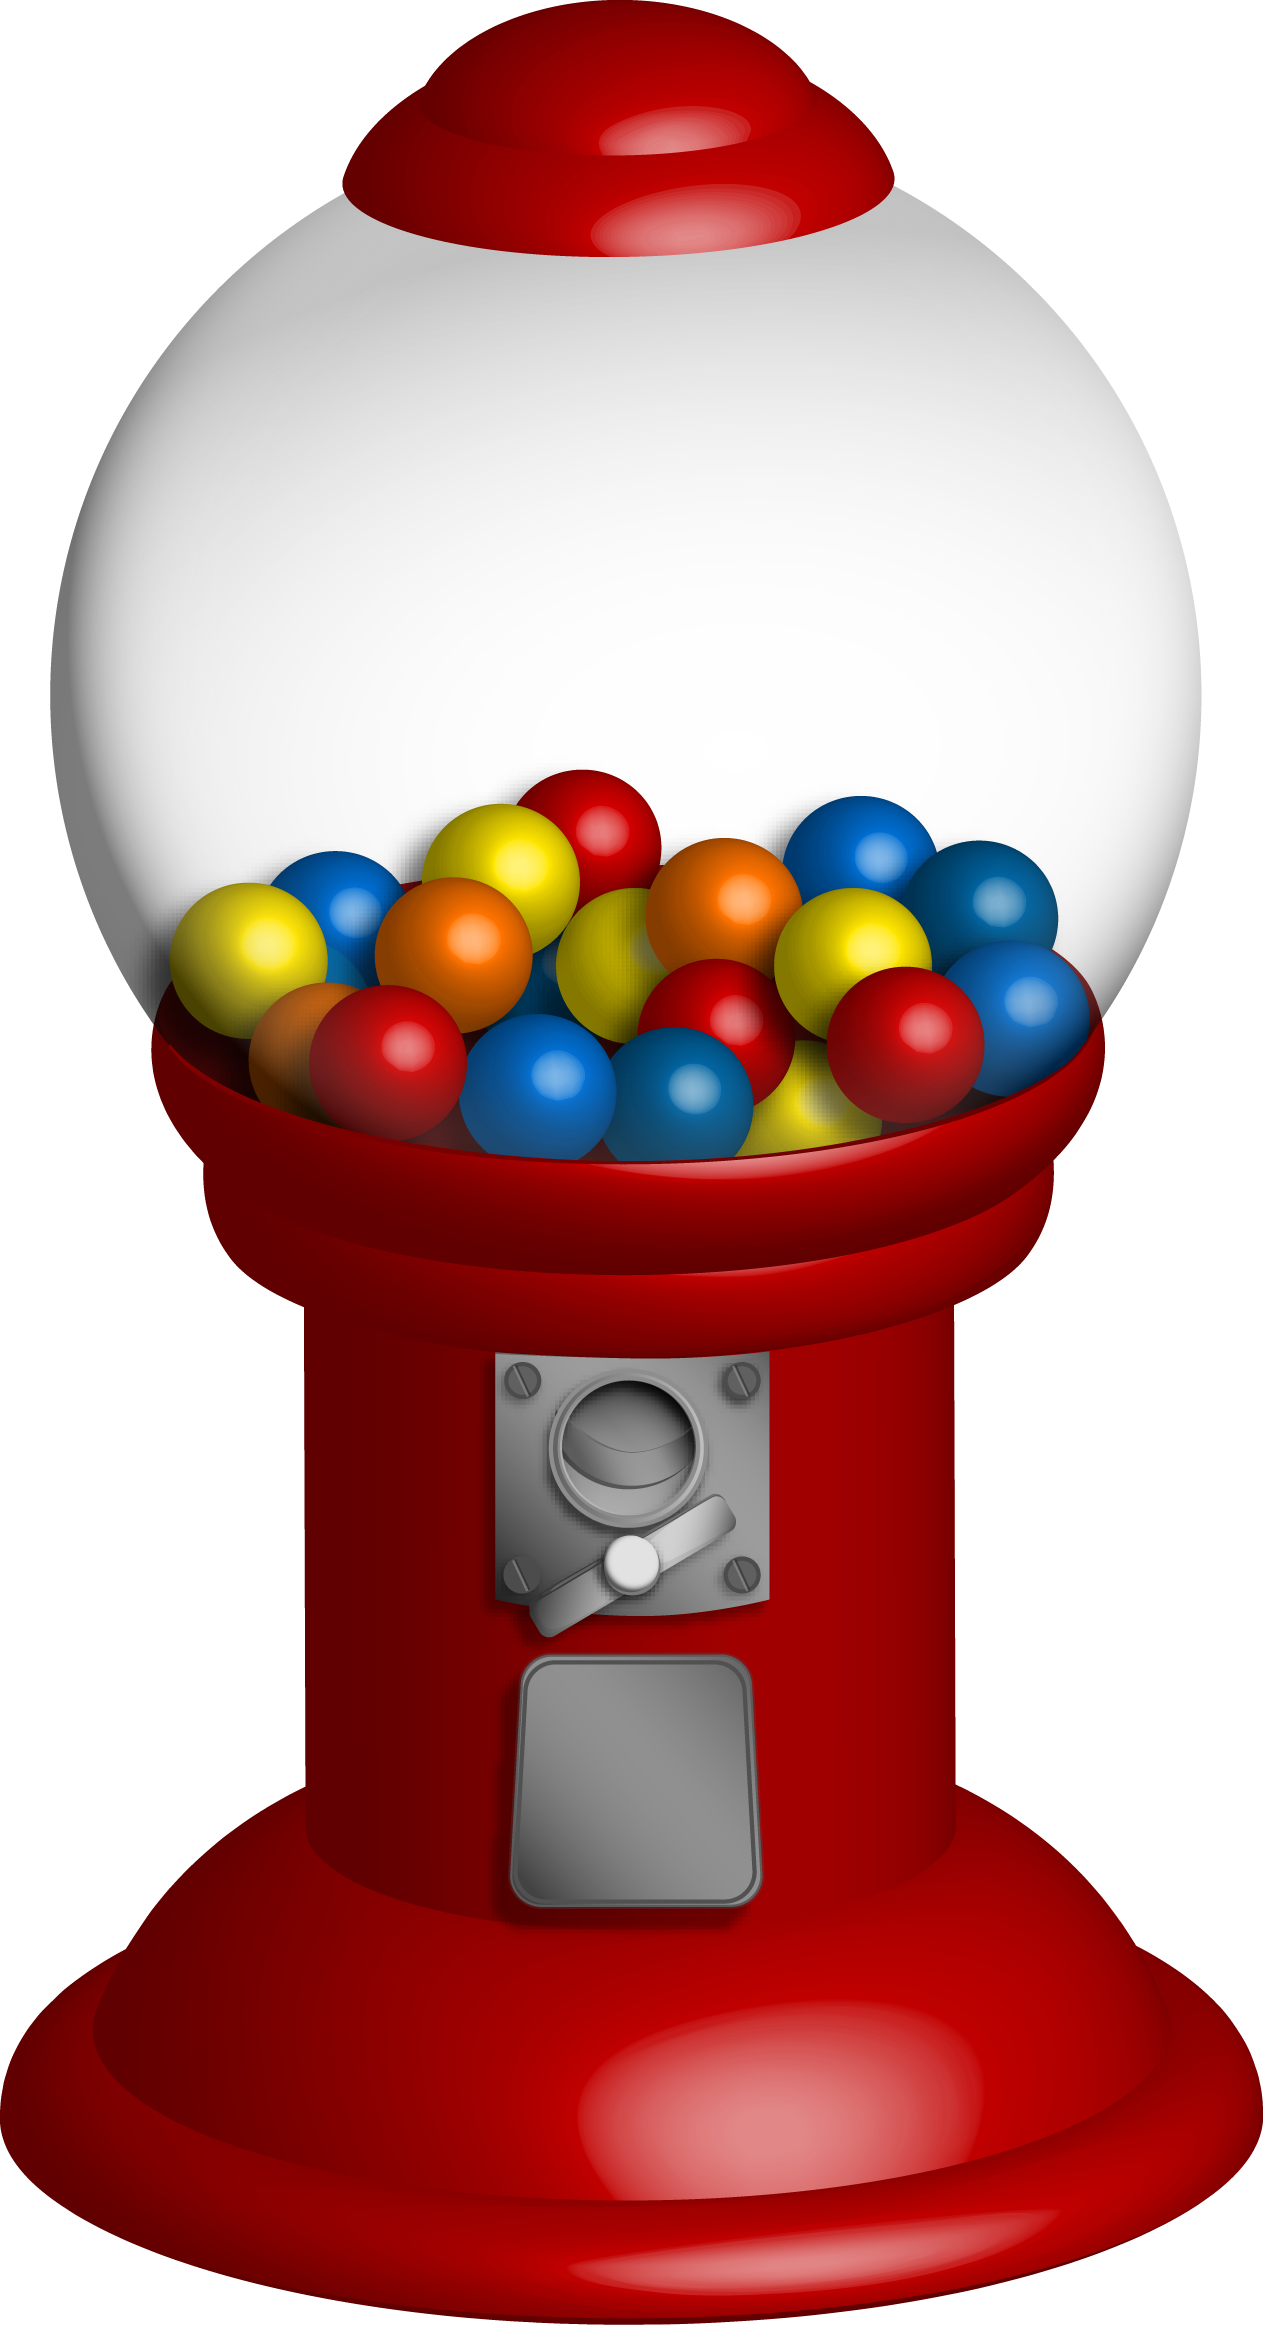 clipart royalty free download Ball on clip art. Gumball machine clipart.